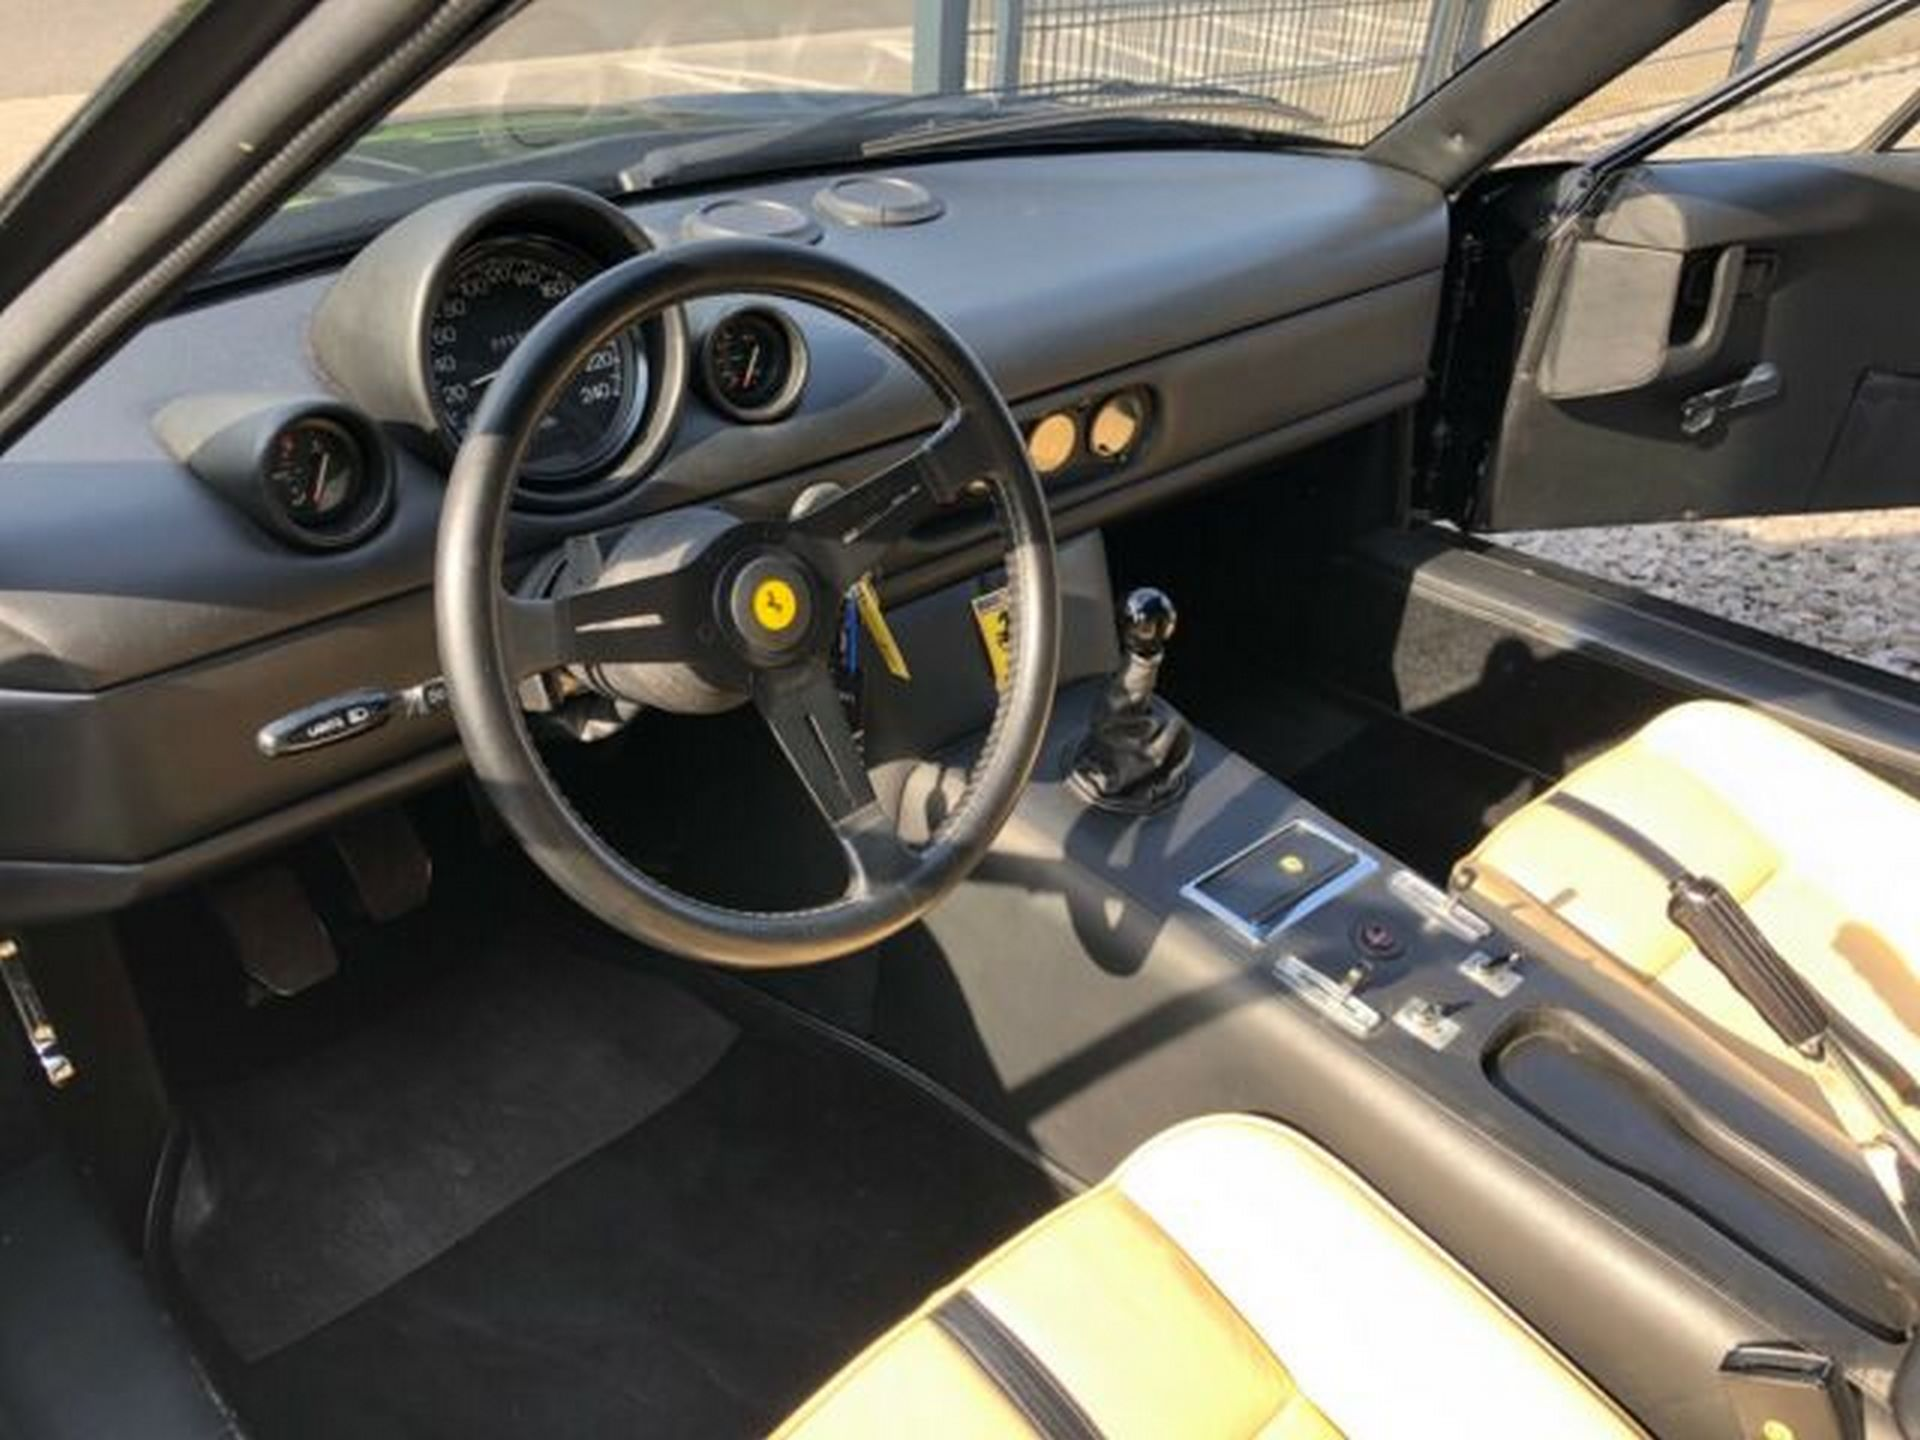 Ferrari-365-GT-NART-for-sale-14